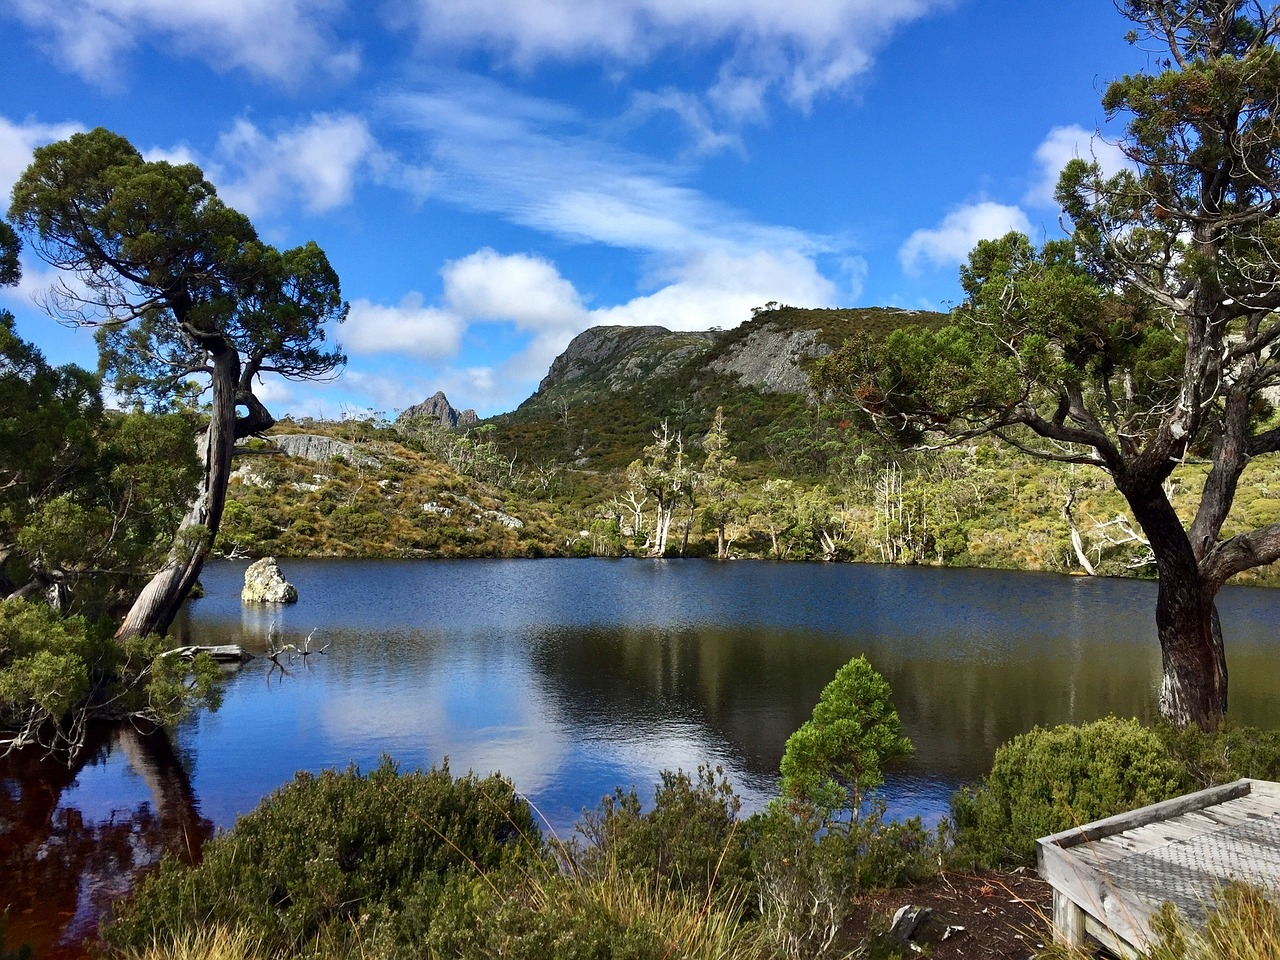 The Cradle Mountain, Tasmania is one of the 8 natural wonders to see in Tasmania. Read the article to discover them all. #tasmania #tasmaniawonders #tasmaniaattractions